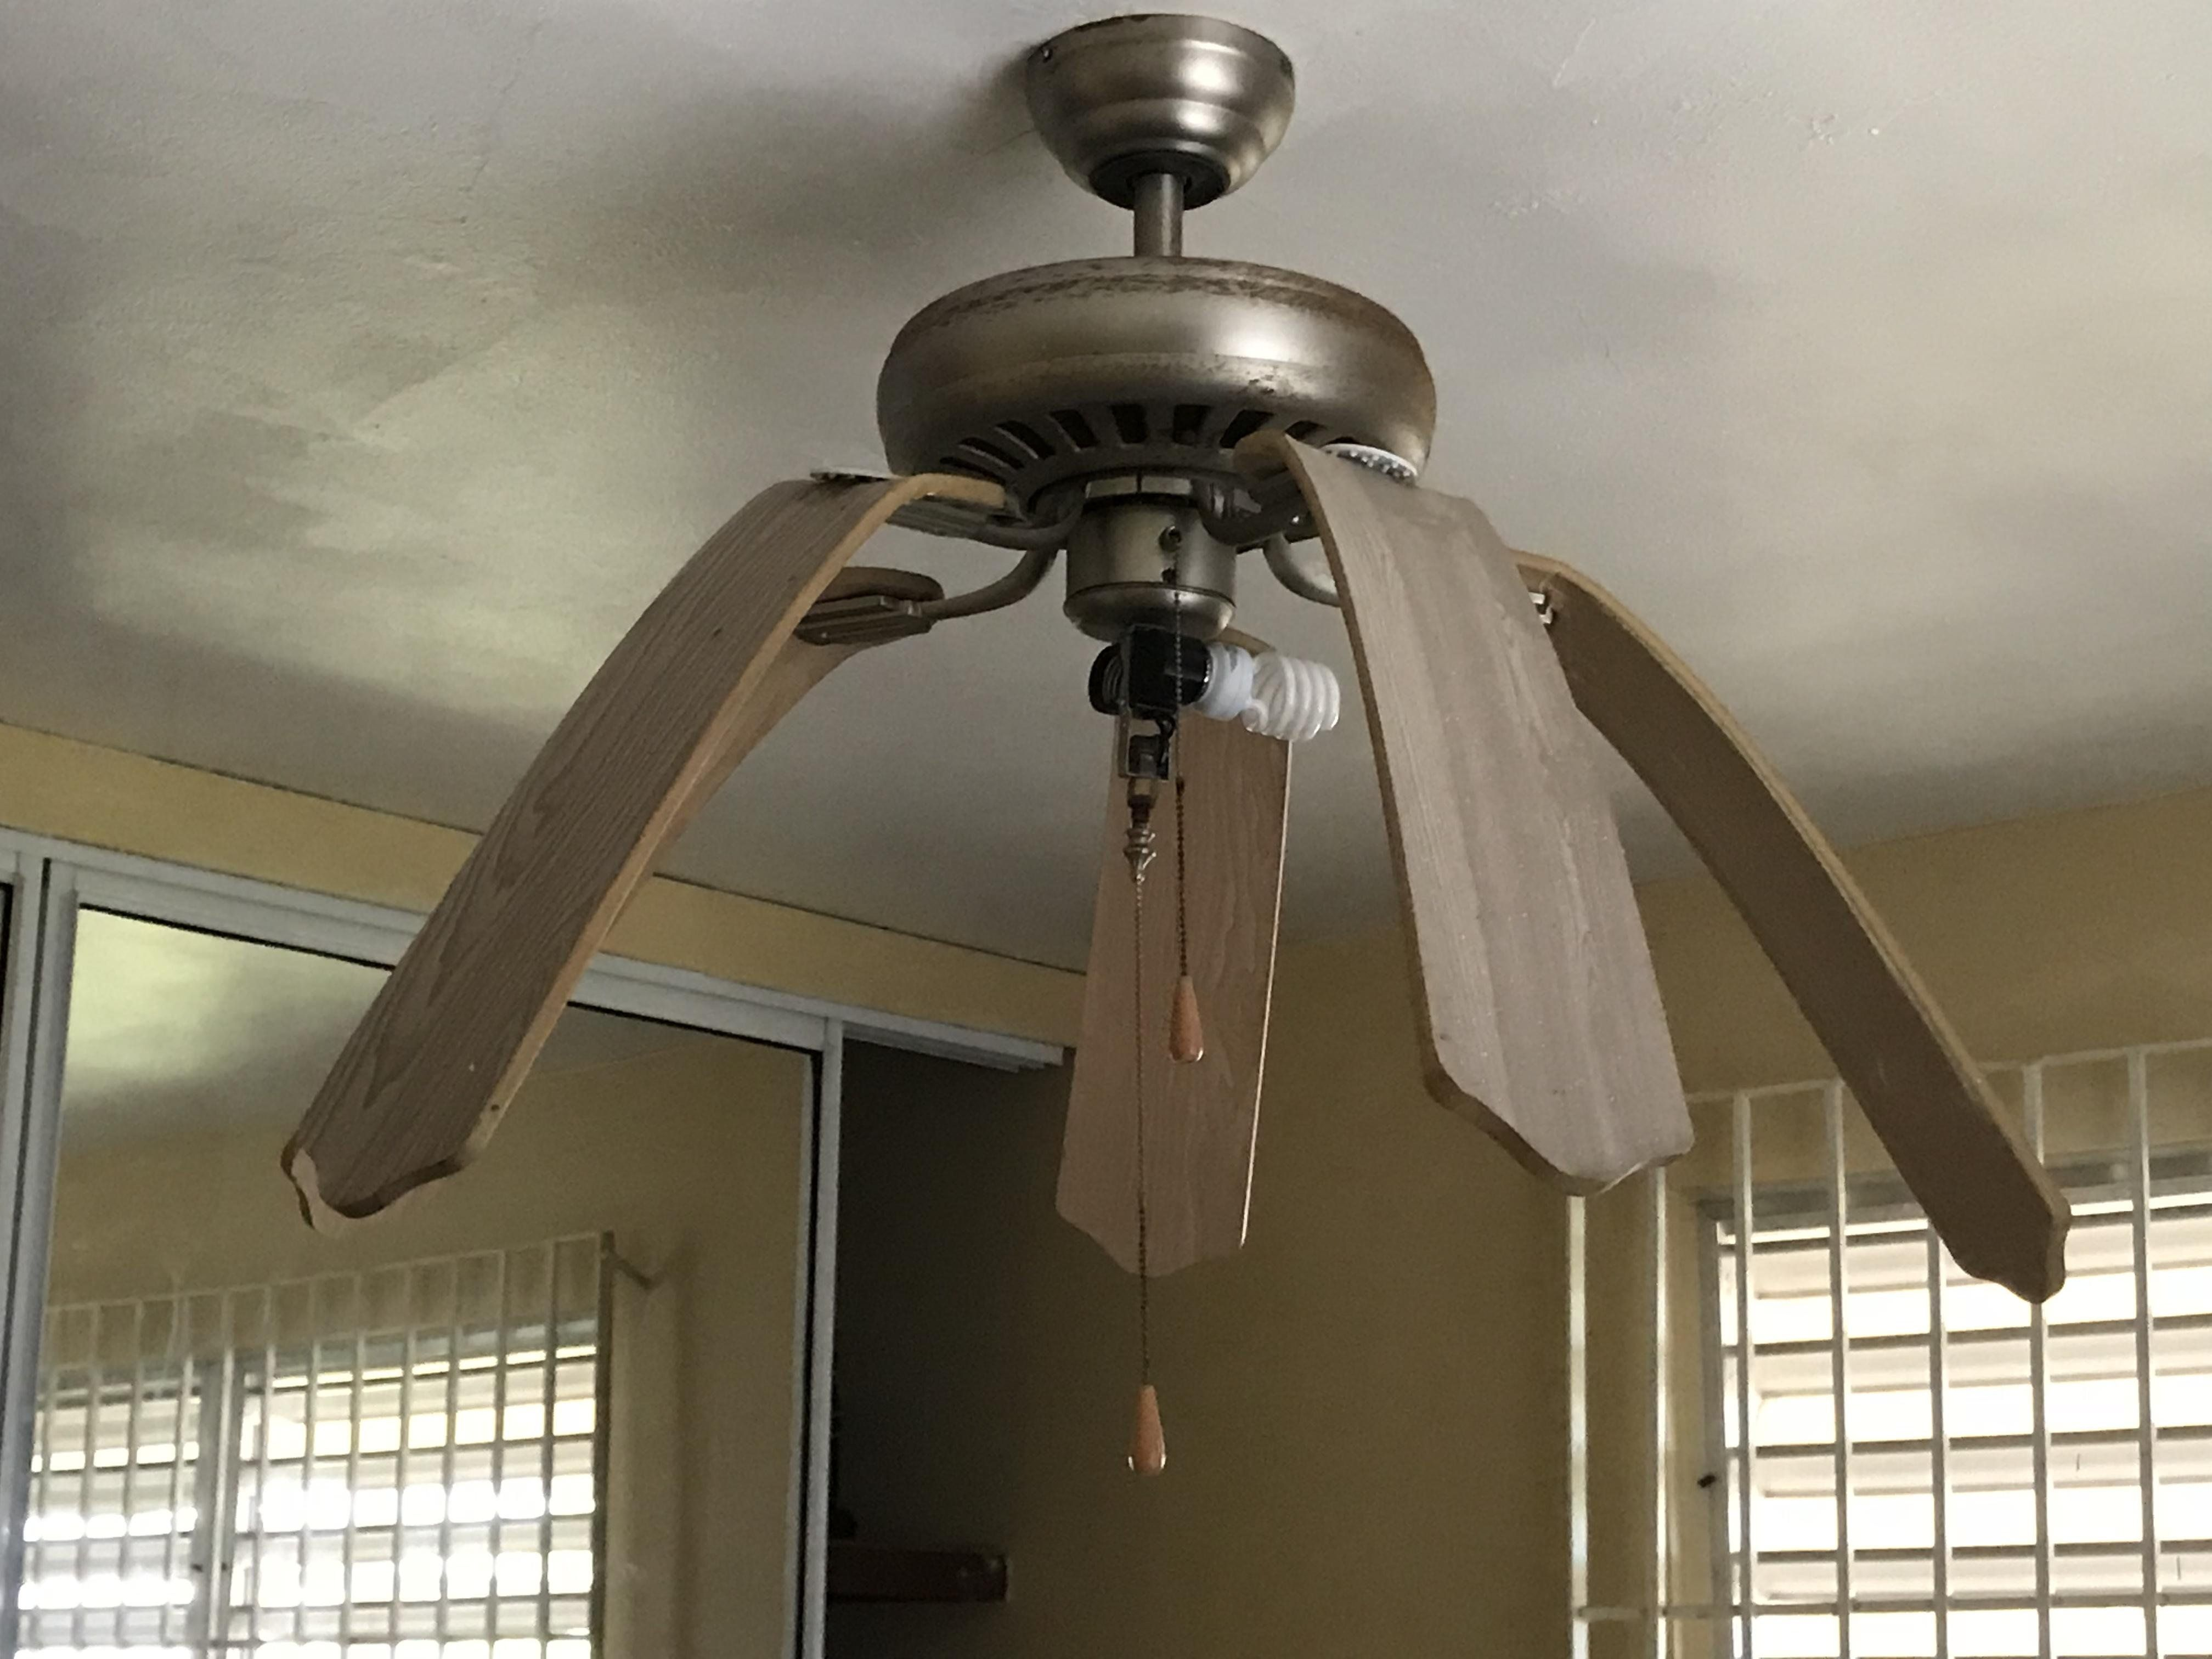 This Ceiling Fan In Puerto Rico Got So Hot It